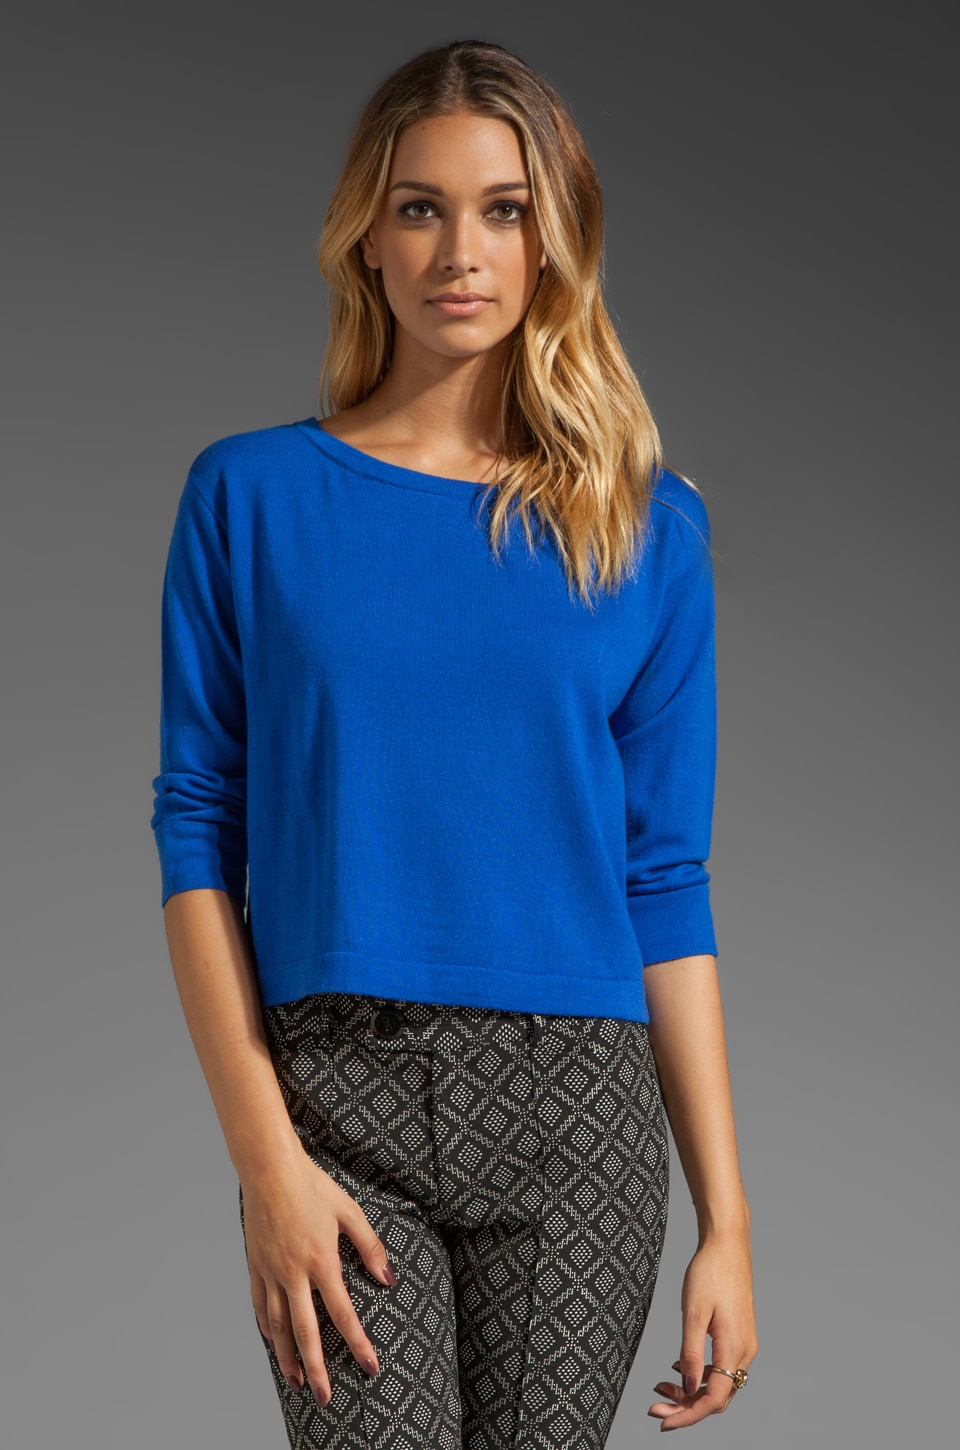 Nanette Lepore King Curtis Knit Pullover in Cobalt